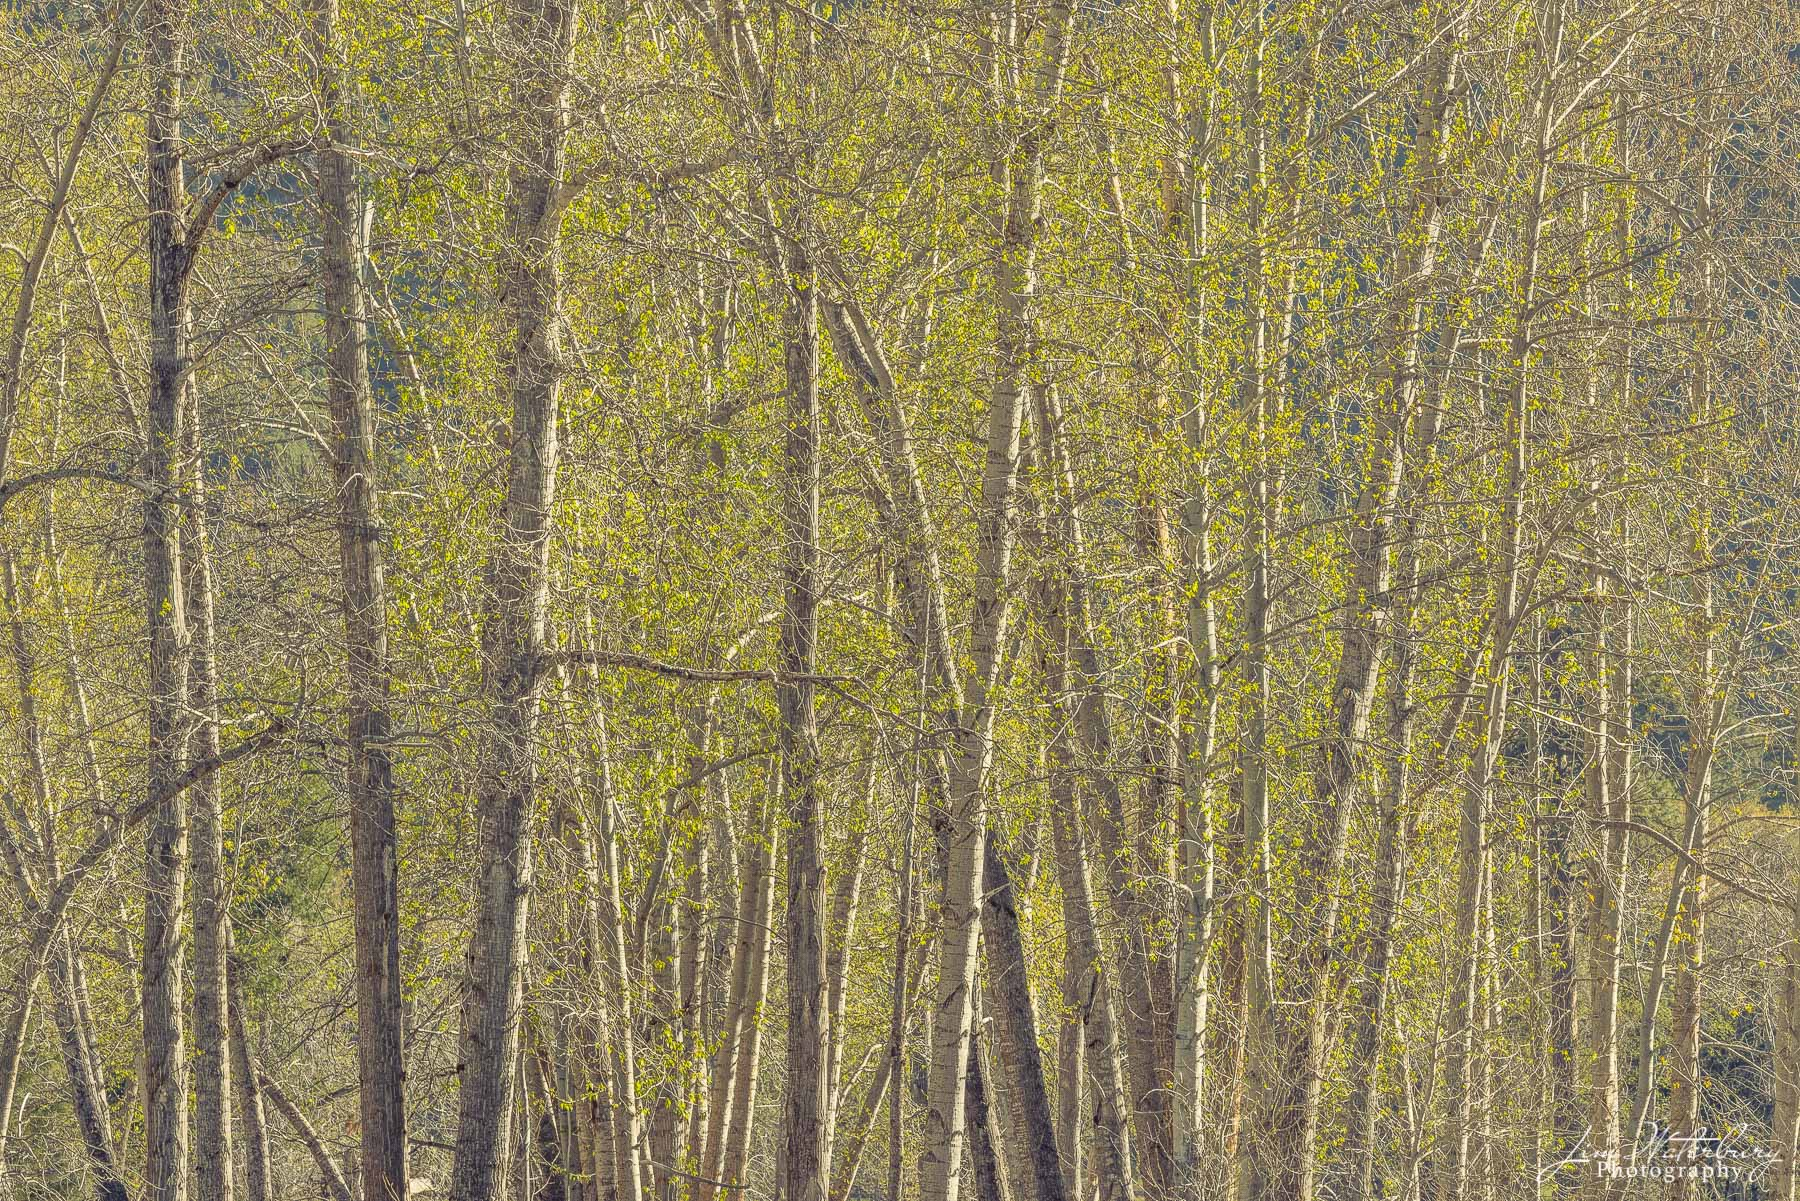 Trees begin to blossom in early spring, creating a screen of green.